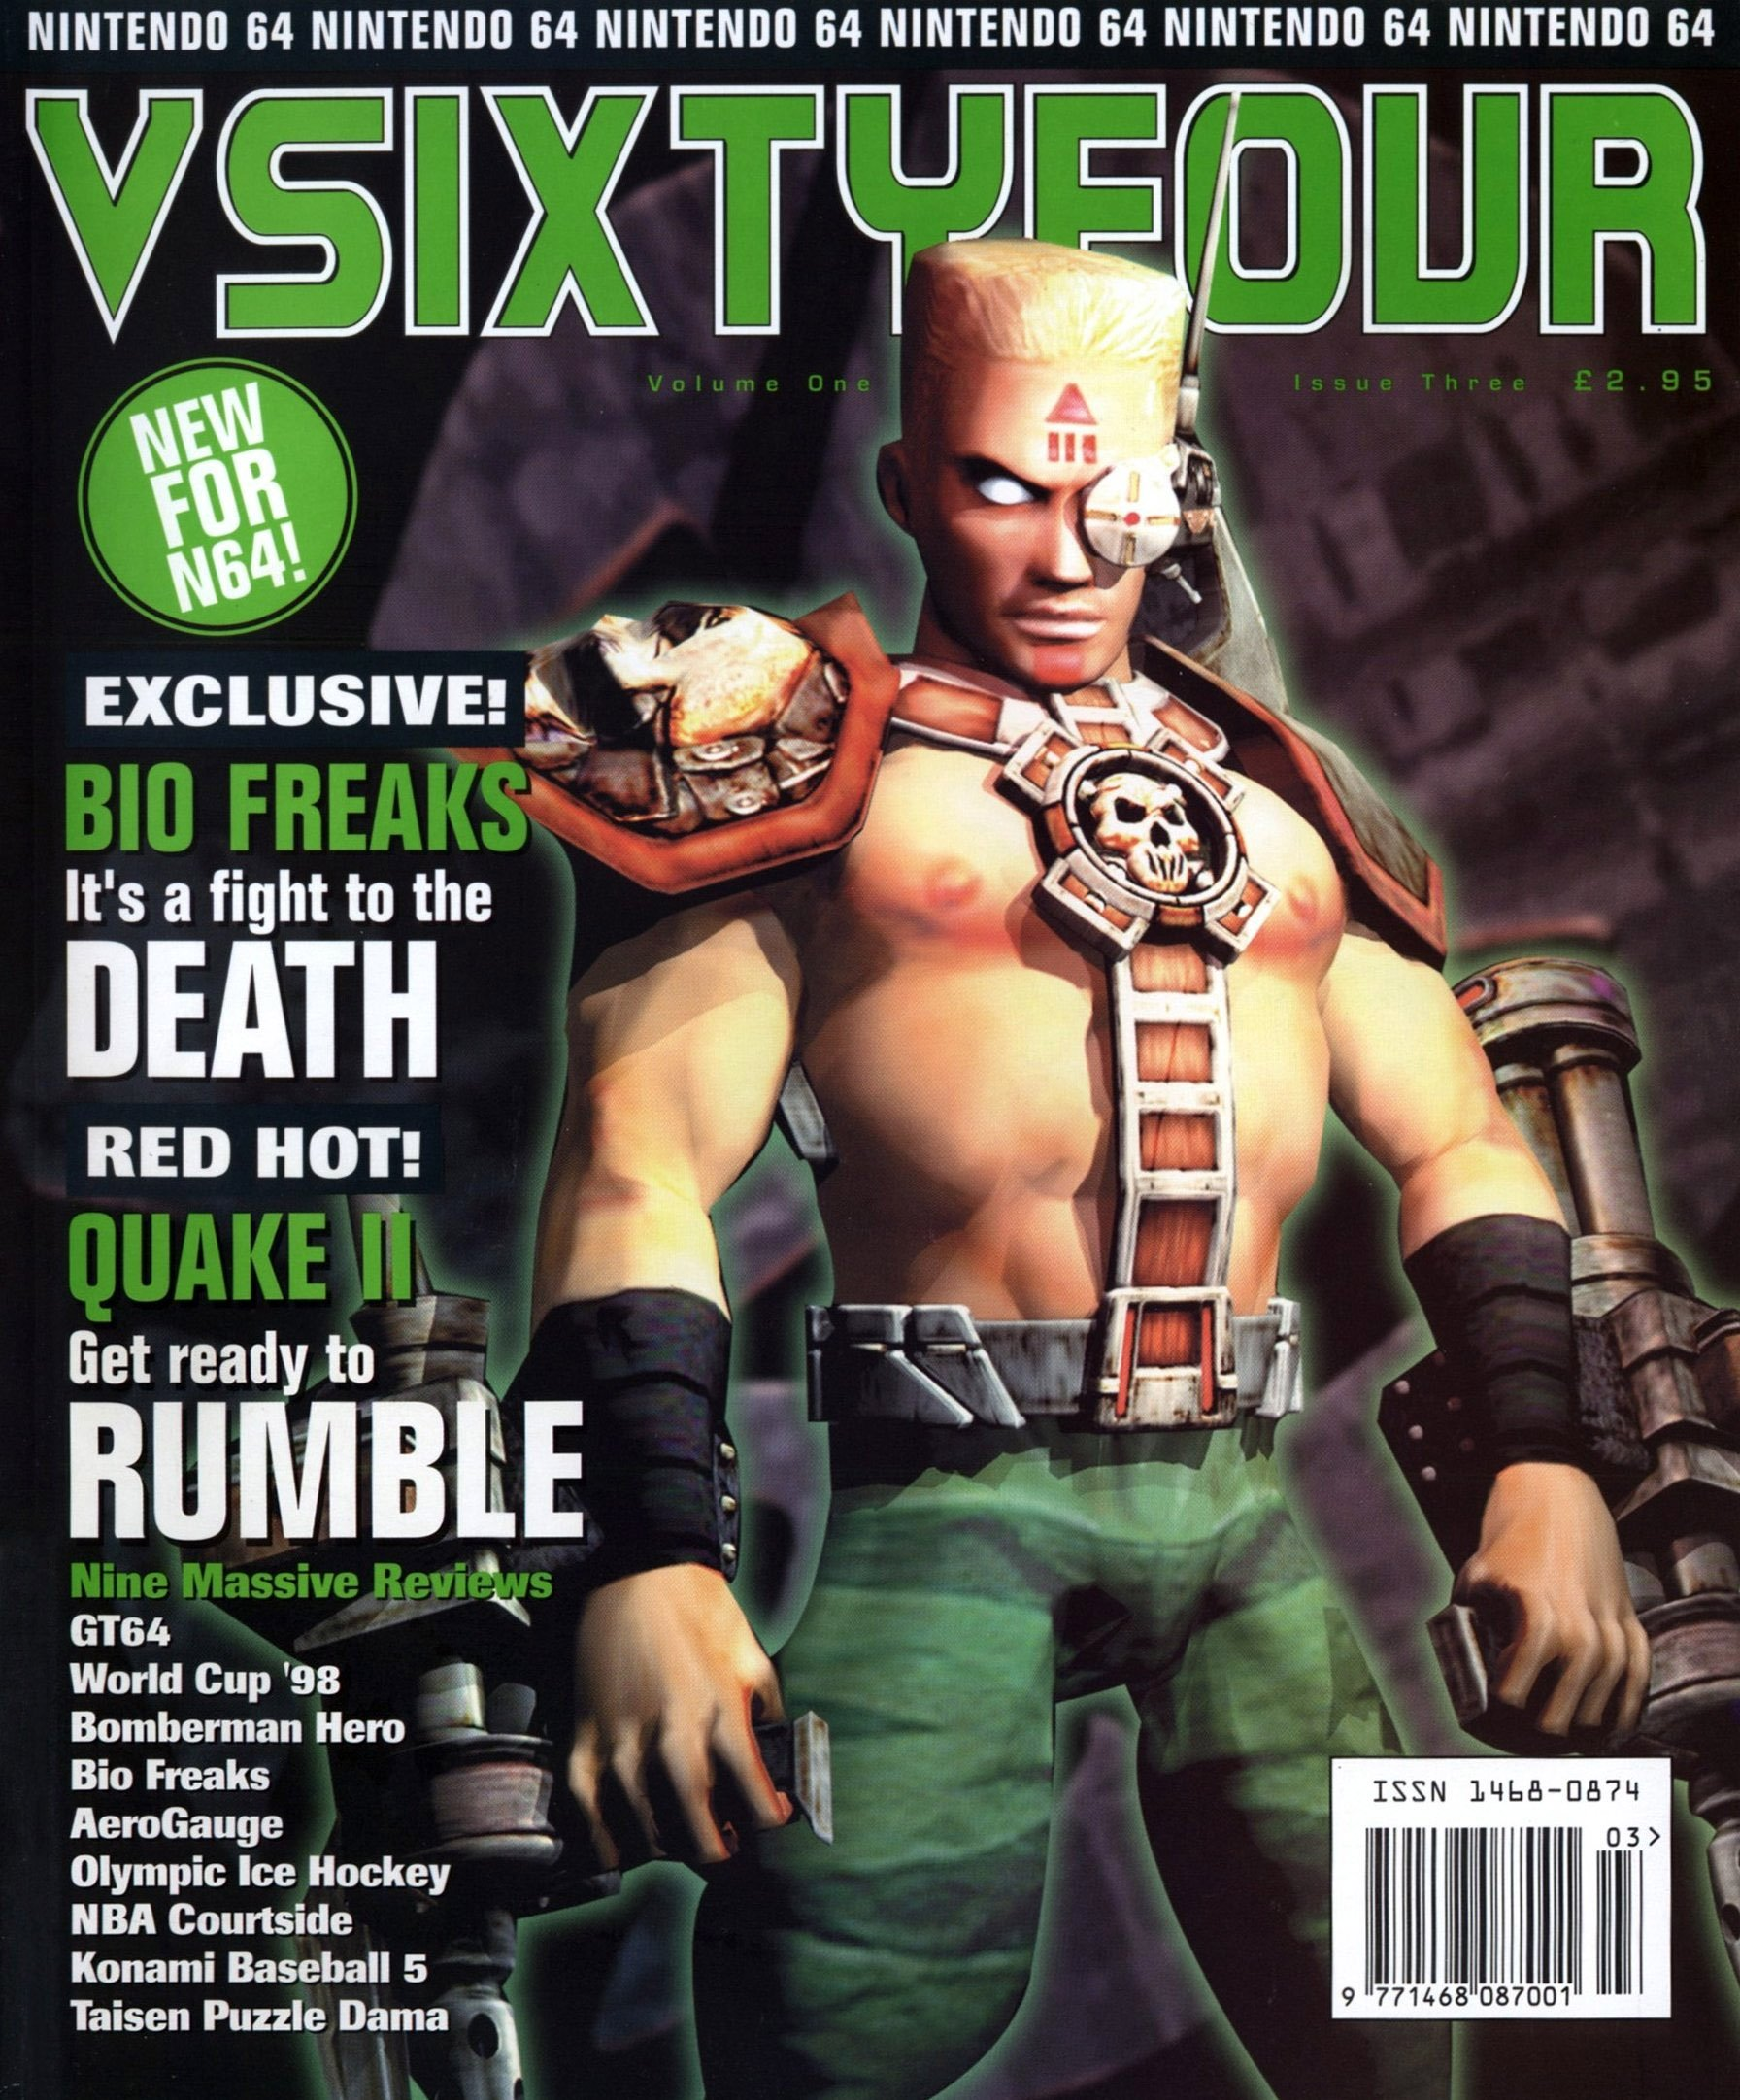 VSIXTYFOUR Issue 3 (May 1998)